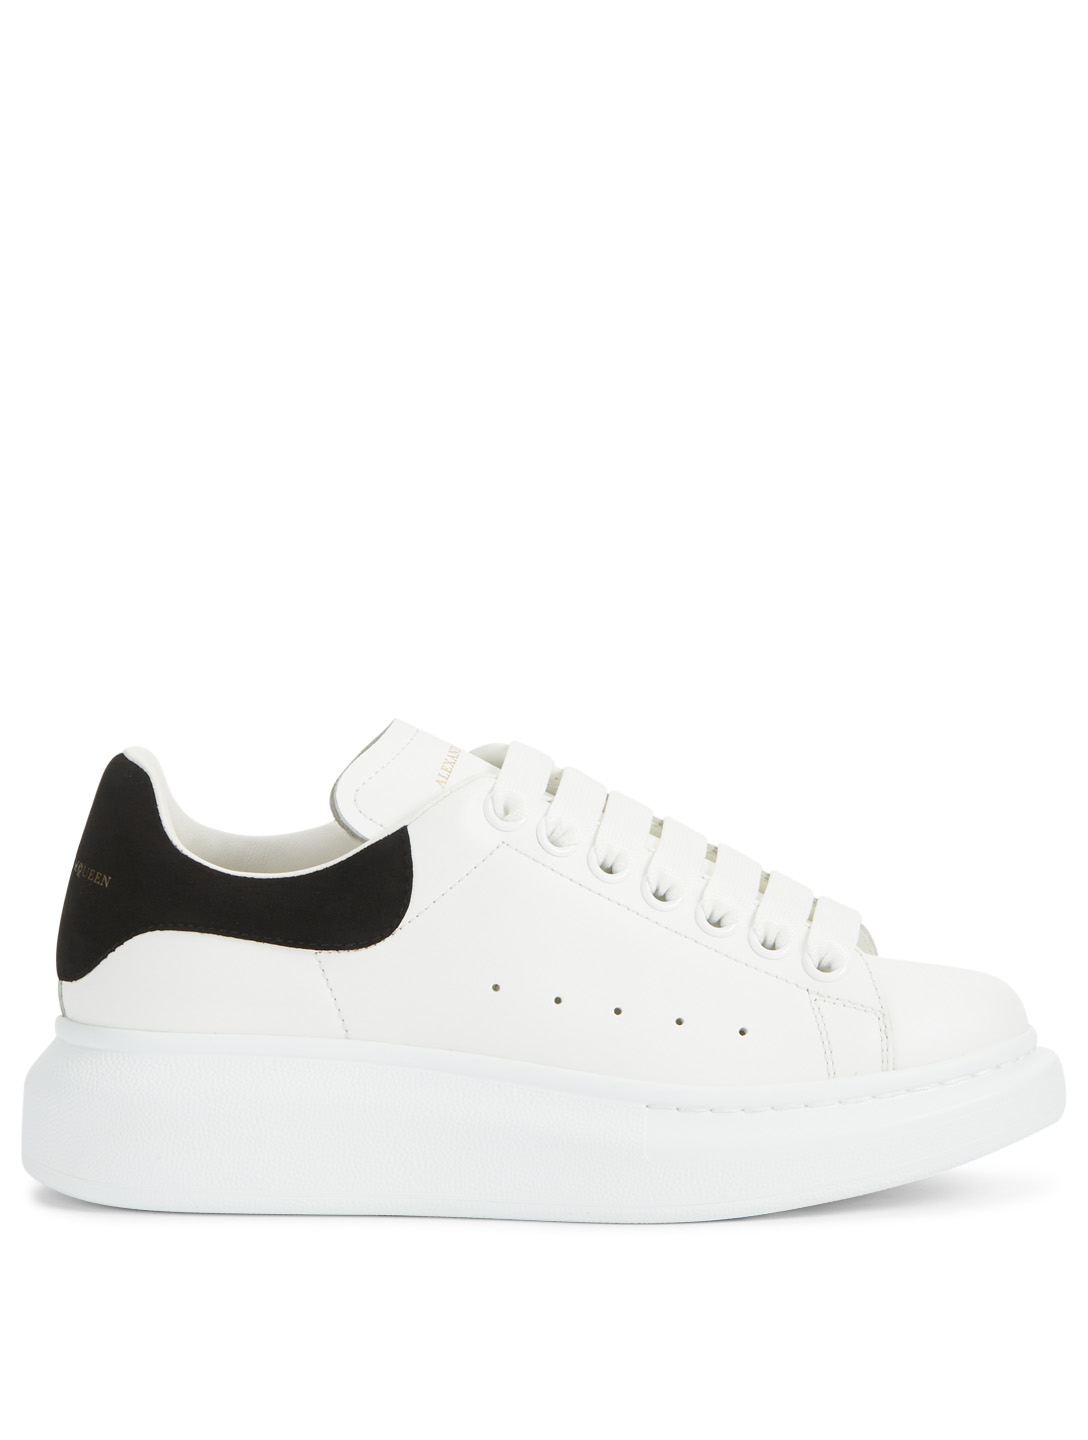 ALEXANDER MCQUEEN Oversized Leather Sneakers Womens Multi